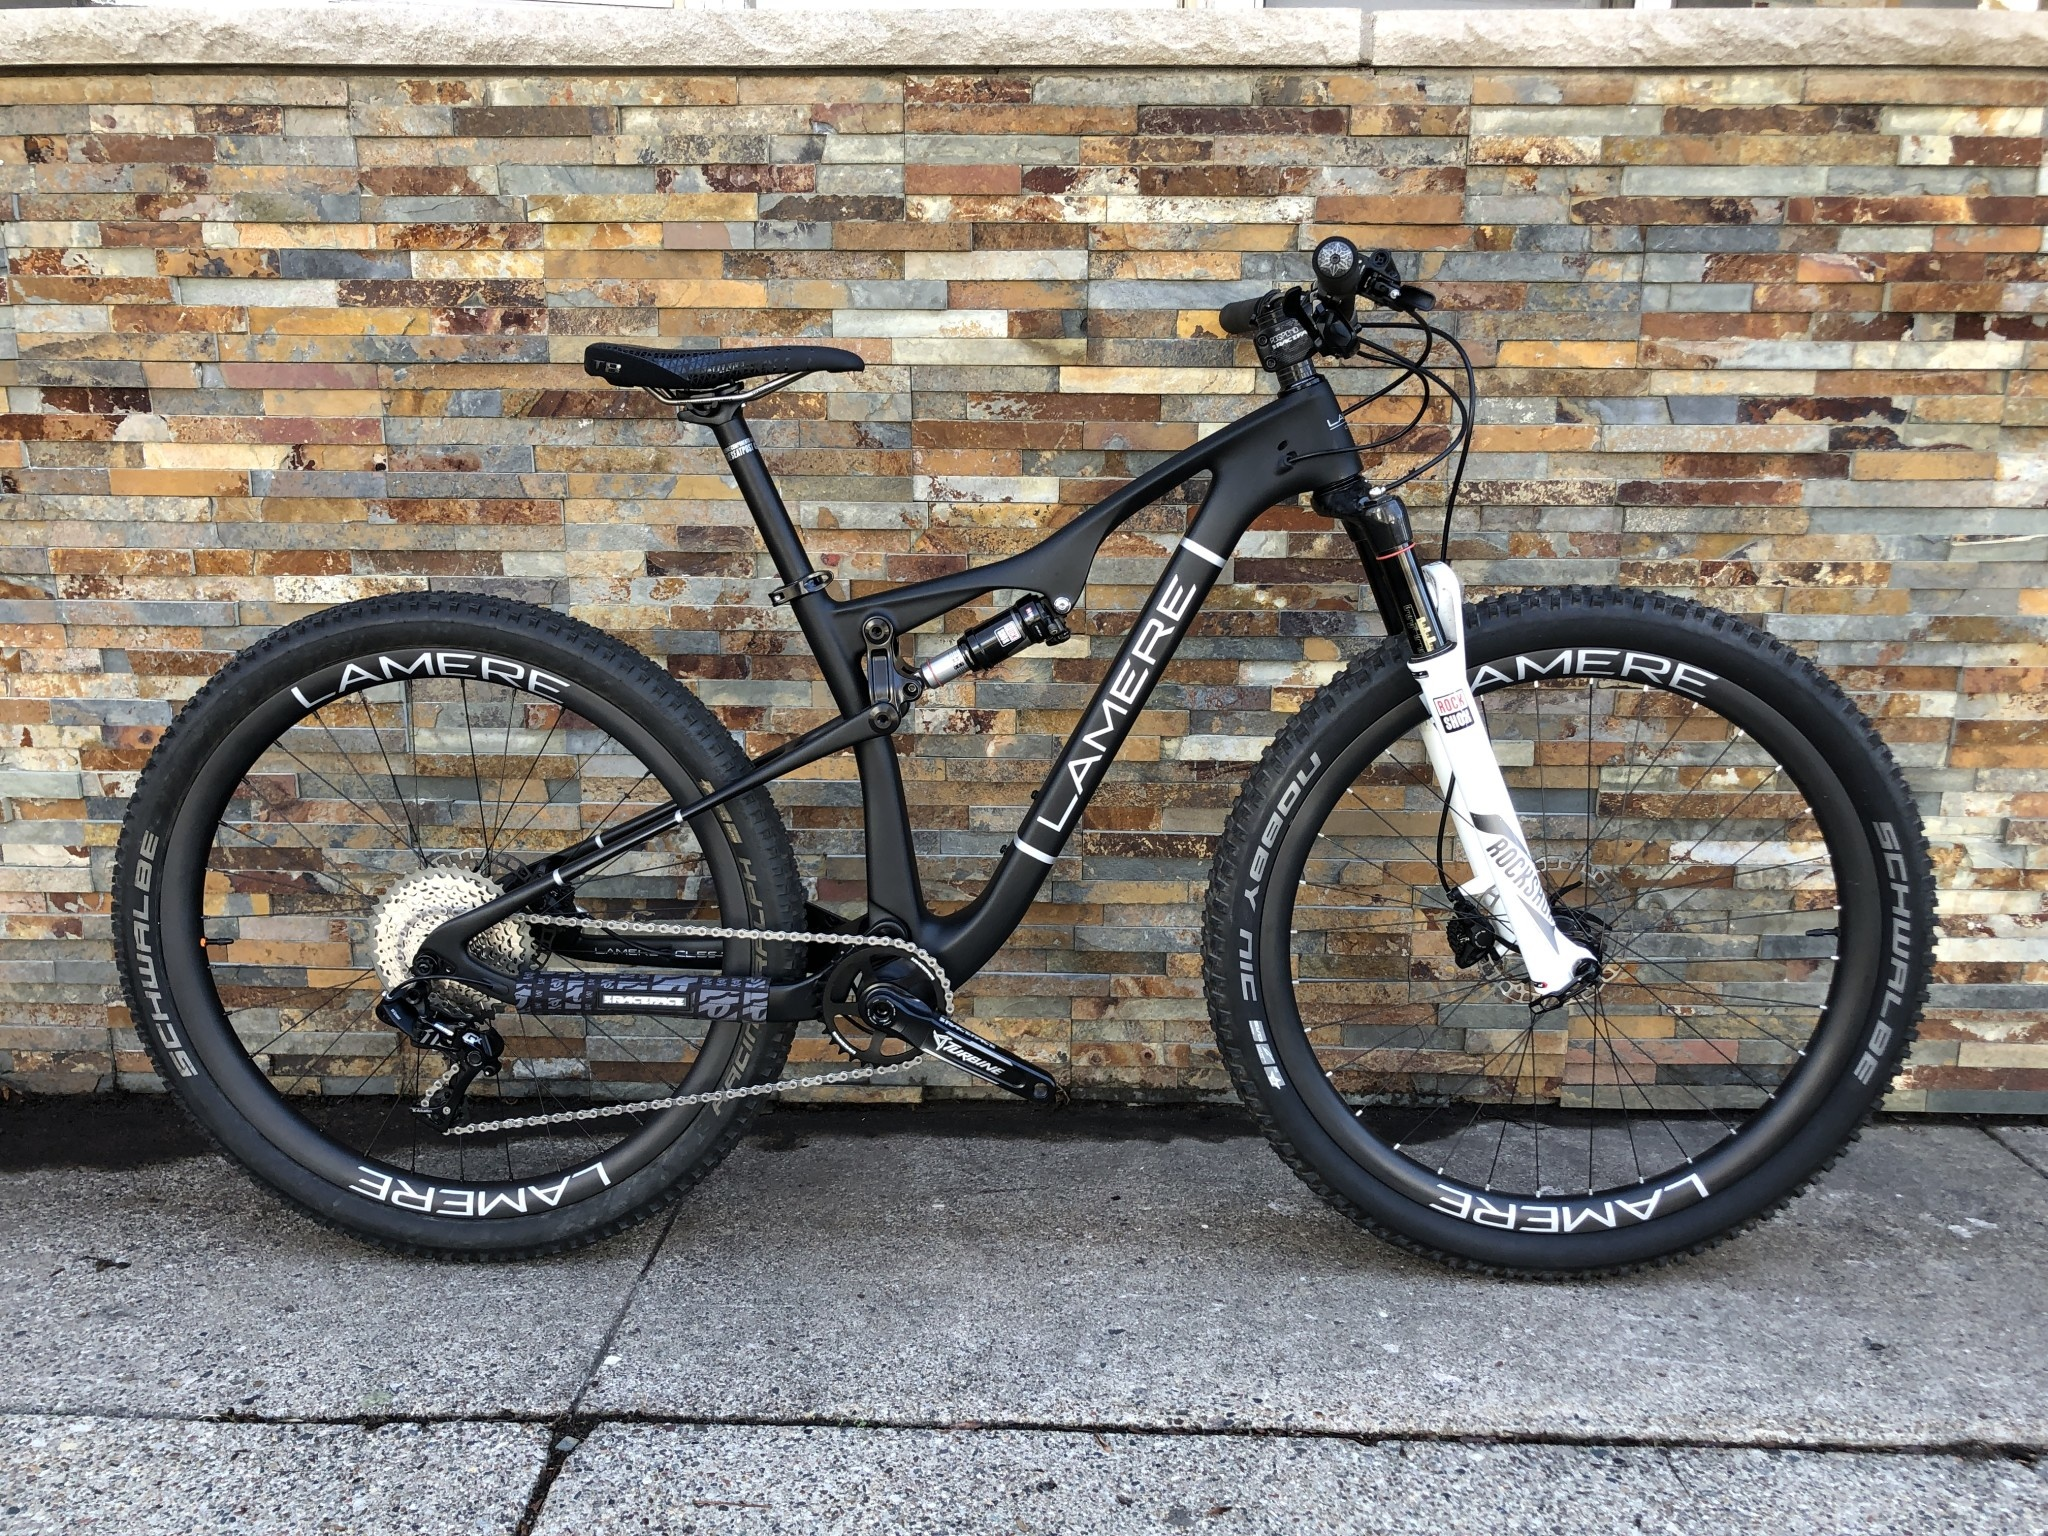 LaMere Race bike for the smaller crowd